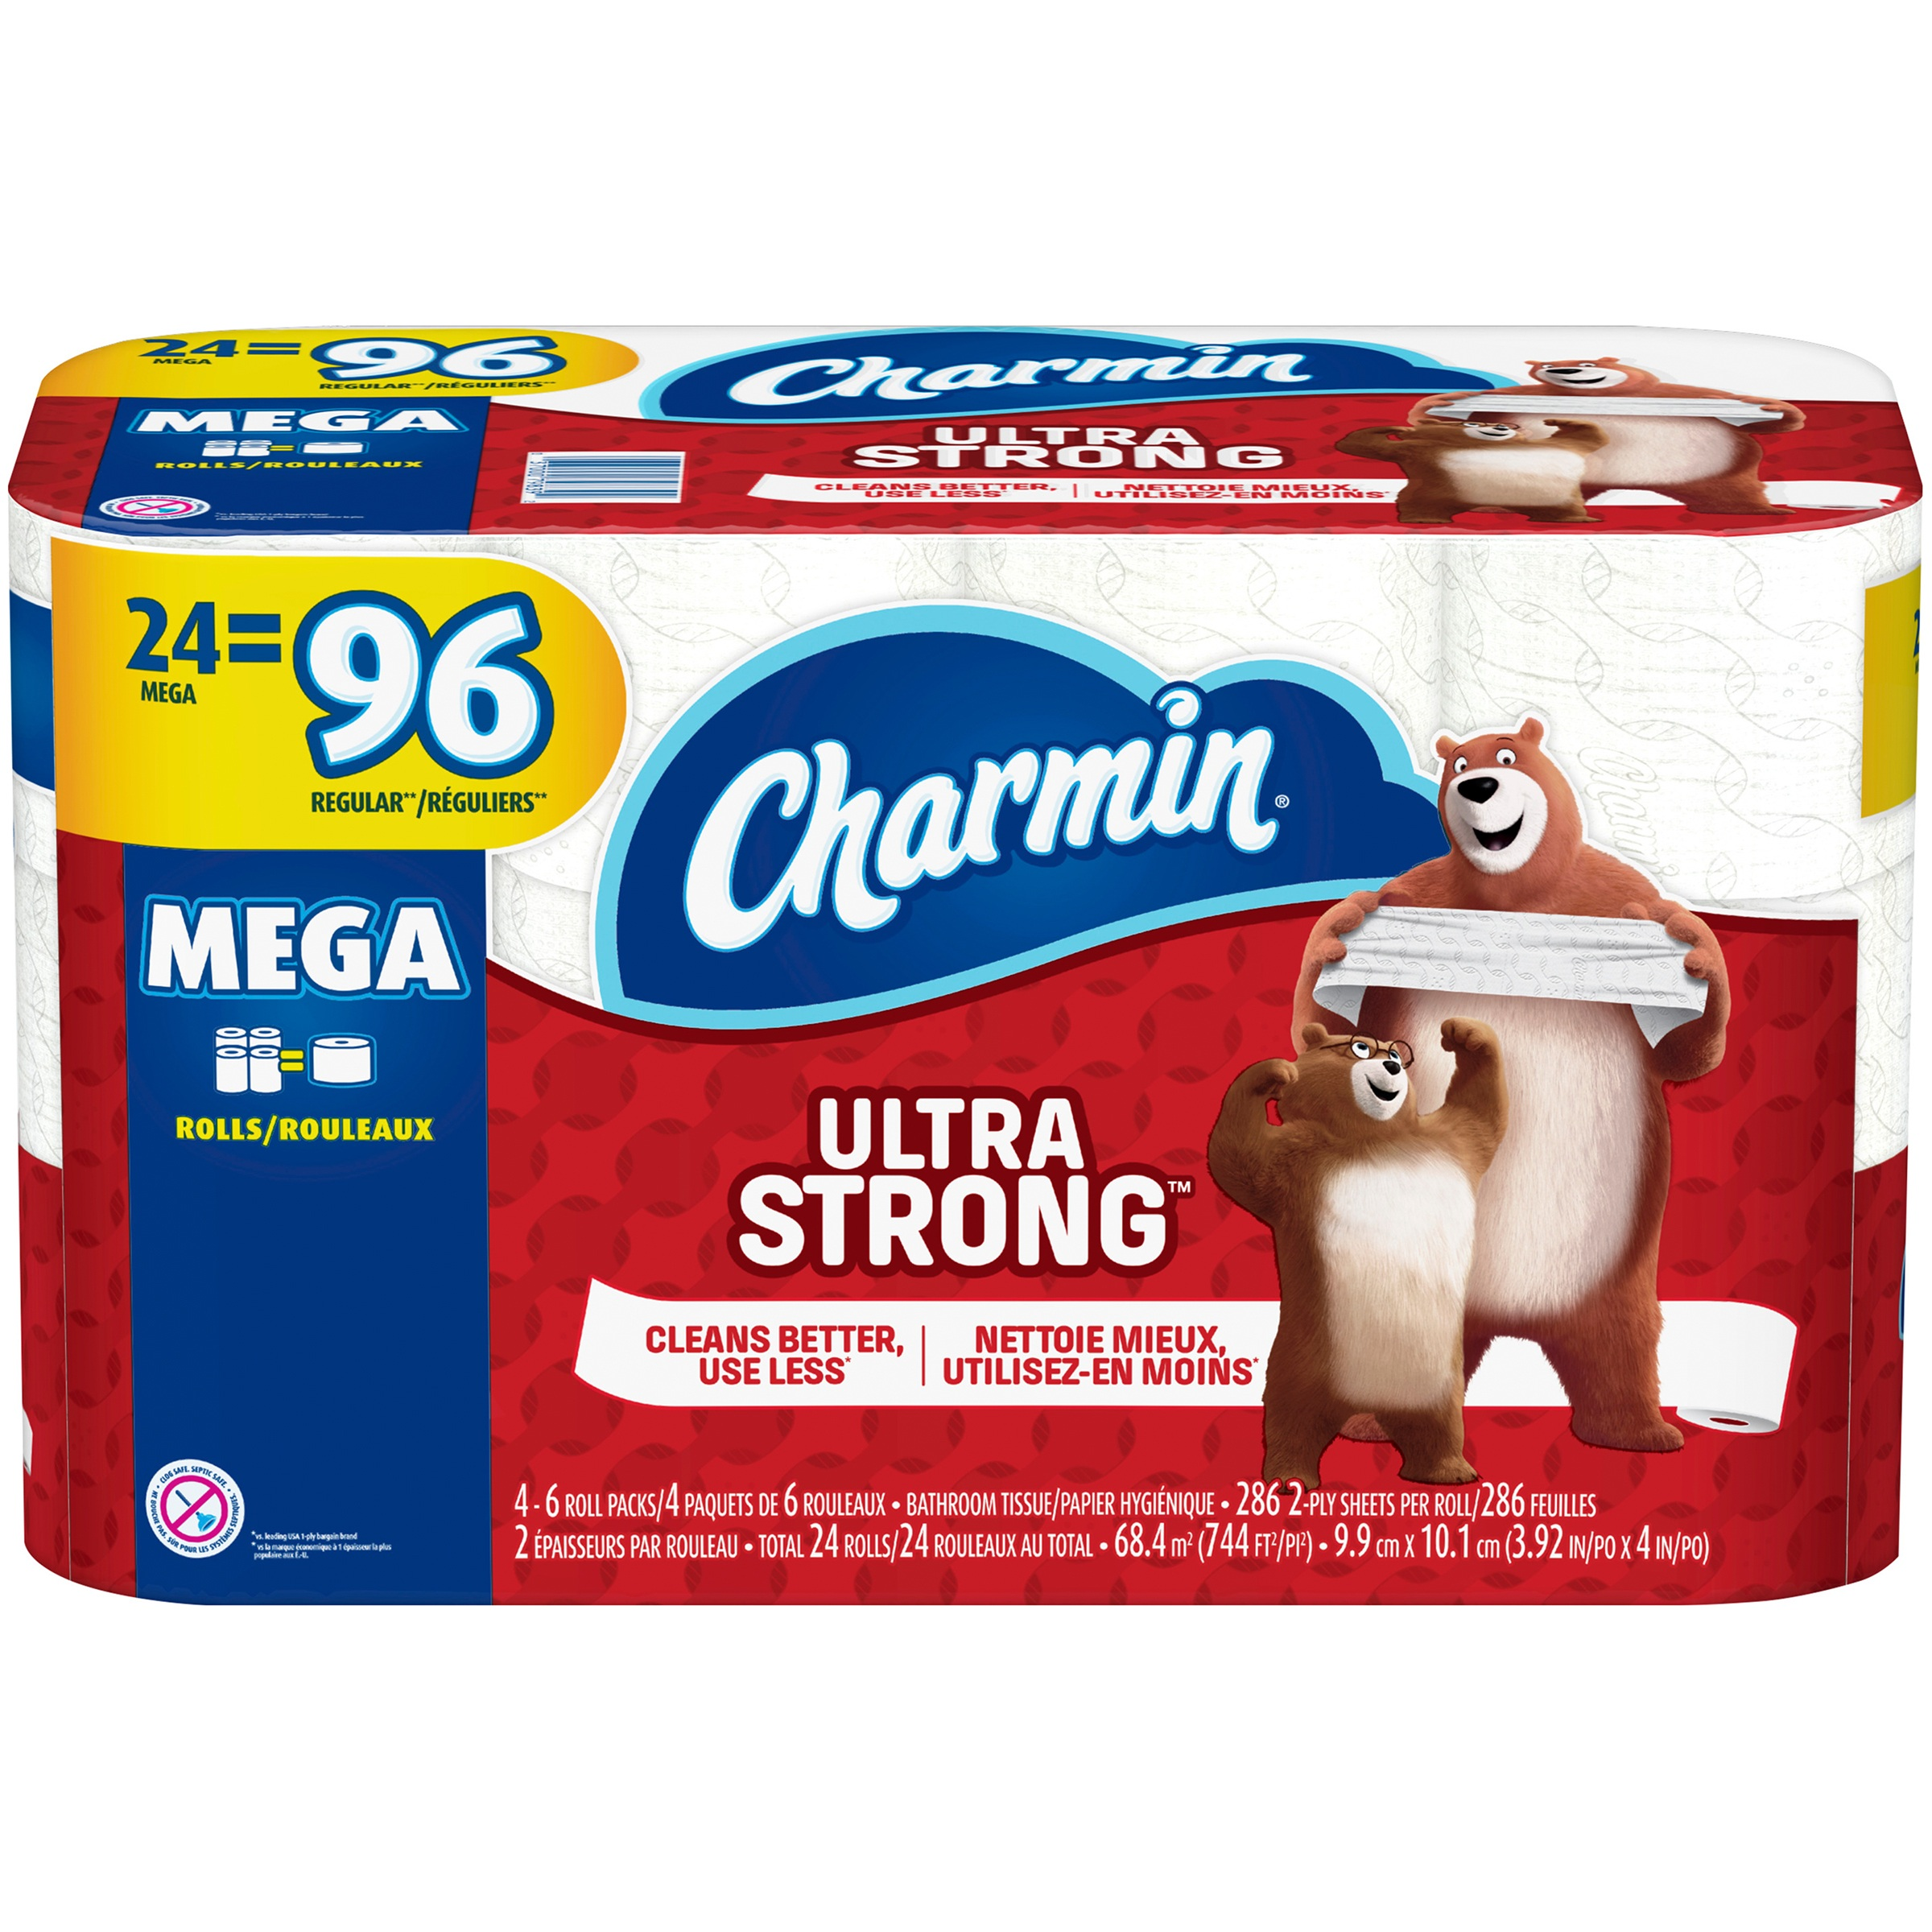 Charmin Ultra Strong Toilet Paper 24 Mega Rolls, 286 sheets per roll